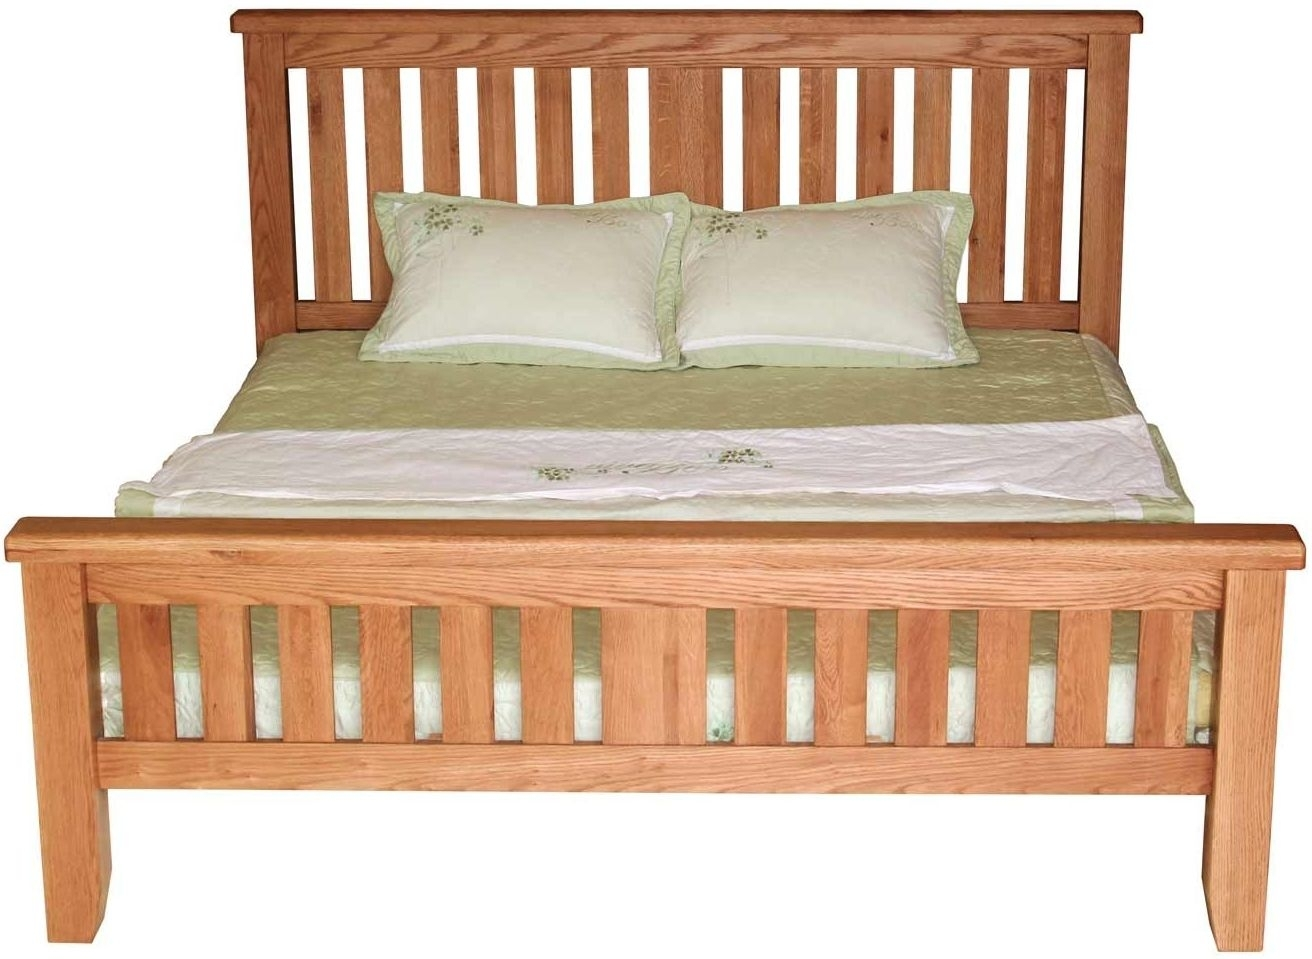 Clearance - Hampshire Oak 4ft 6in Double Bed - New - E-225